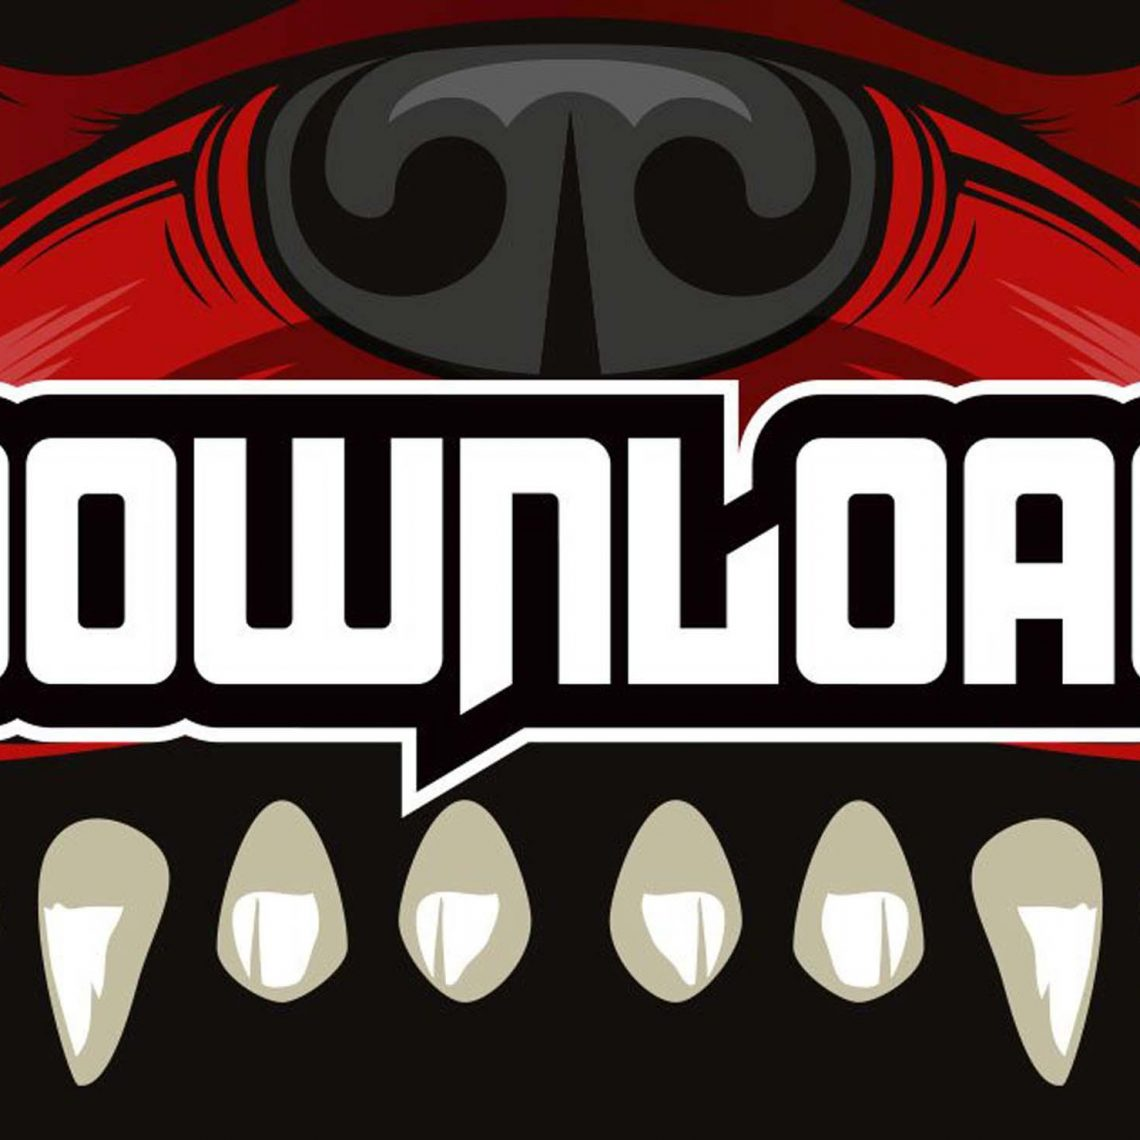 IT'S TIME FOR YOUR FIRST #DL2020 ANNOUNCEMENT! KISS, IRON MAIDEN, SYSTEM OF A DOWN AND MORE!